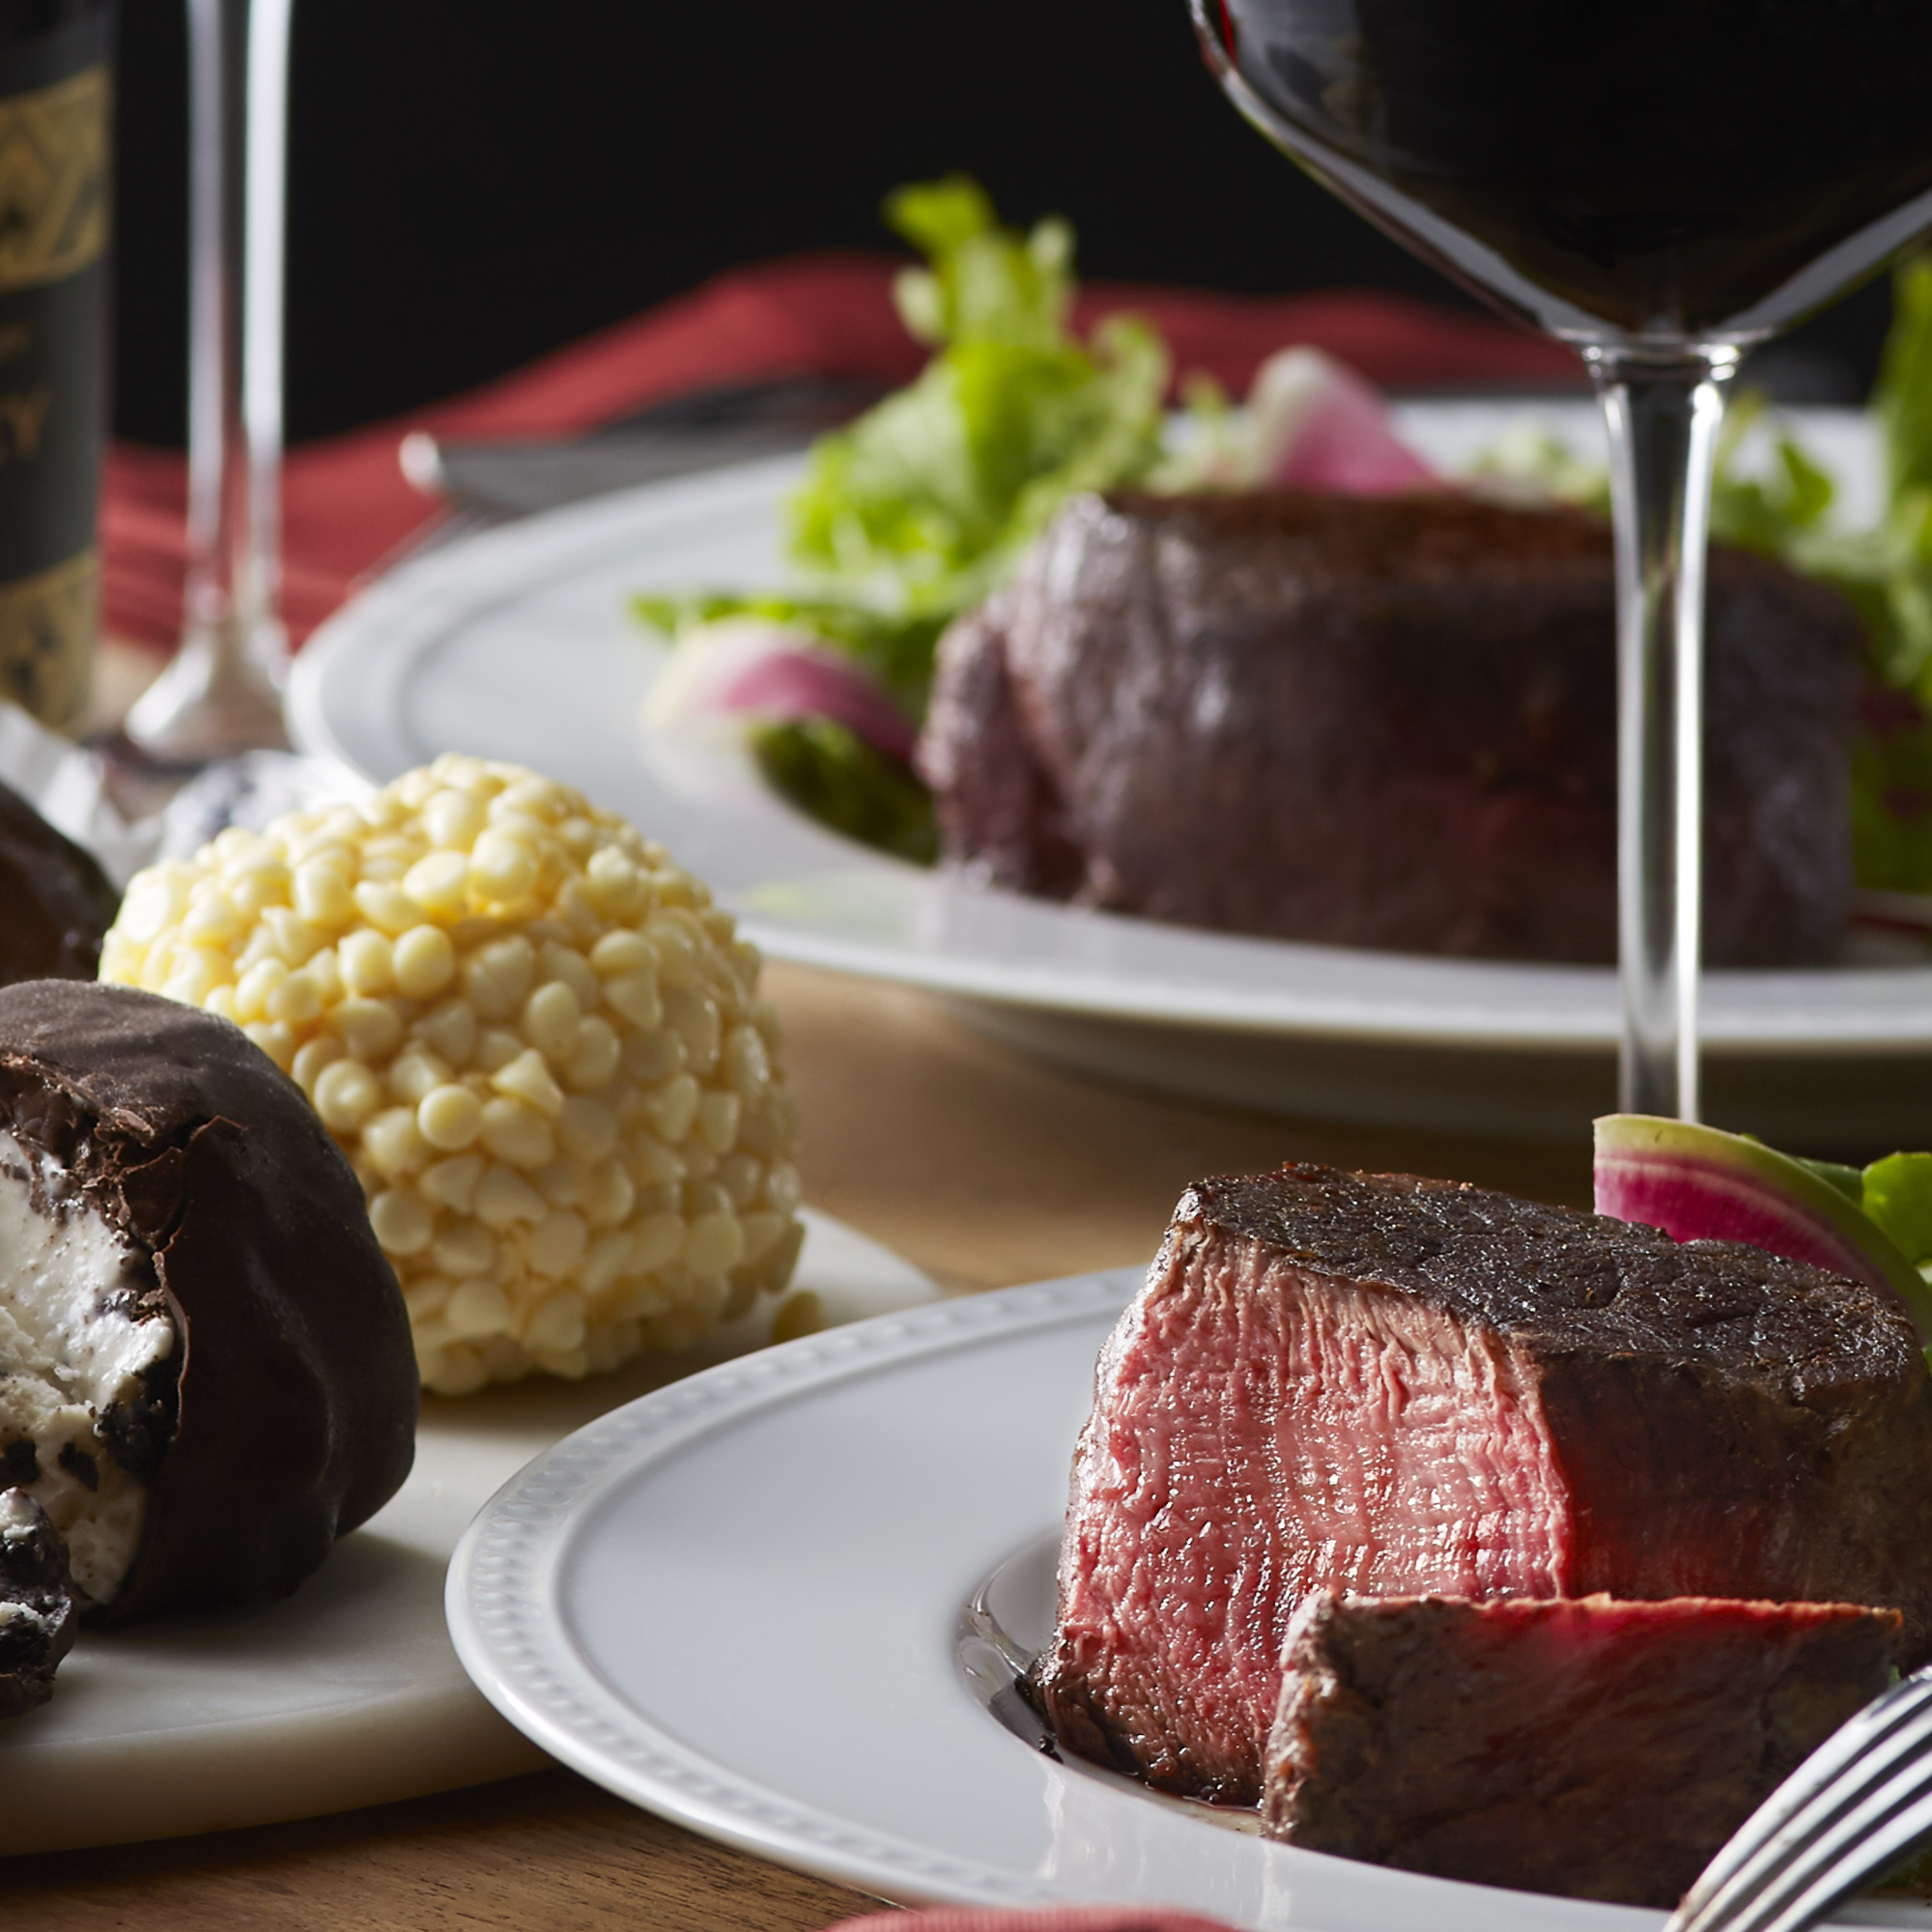 Filet Mignon and luscious Italian Ice Cream Truffles